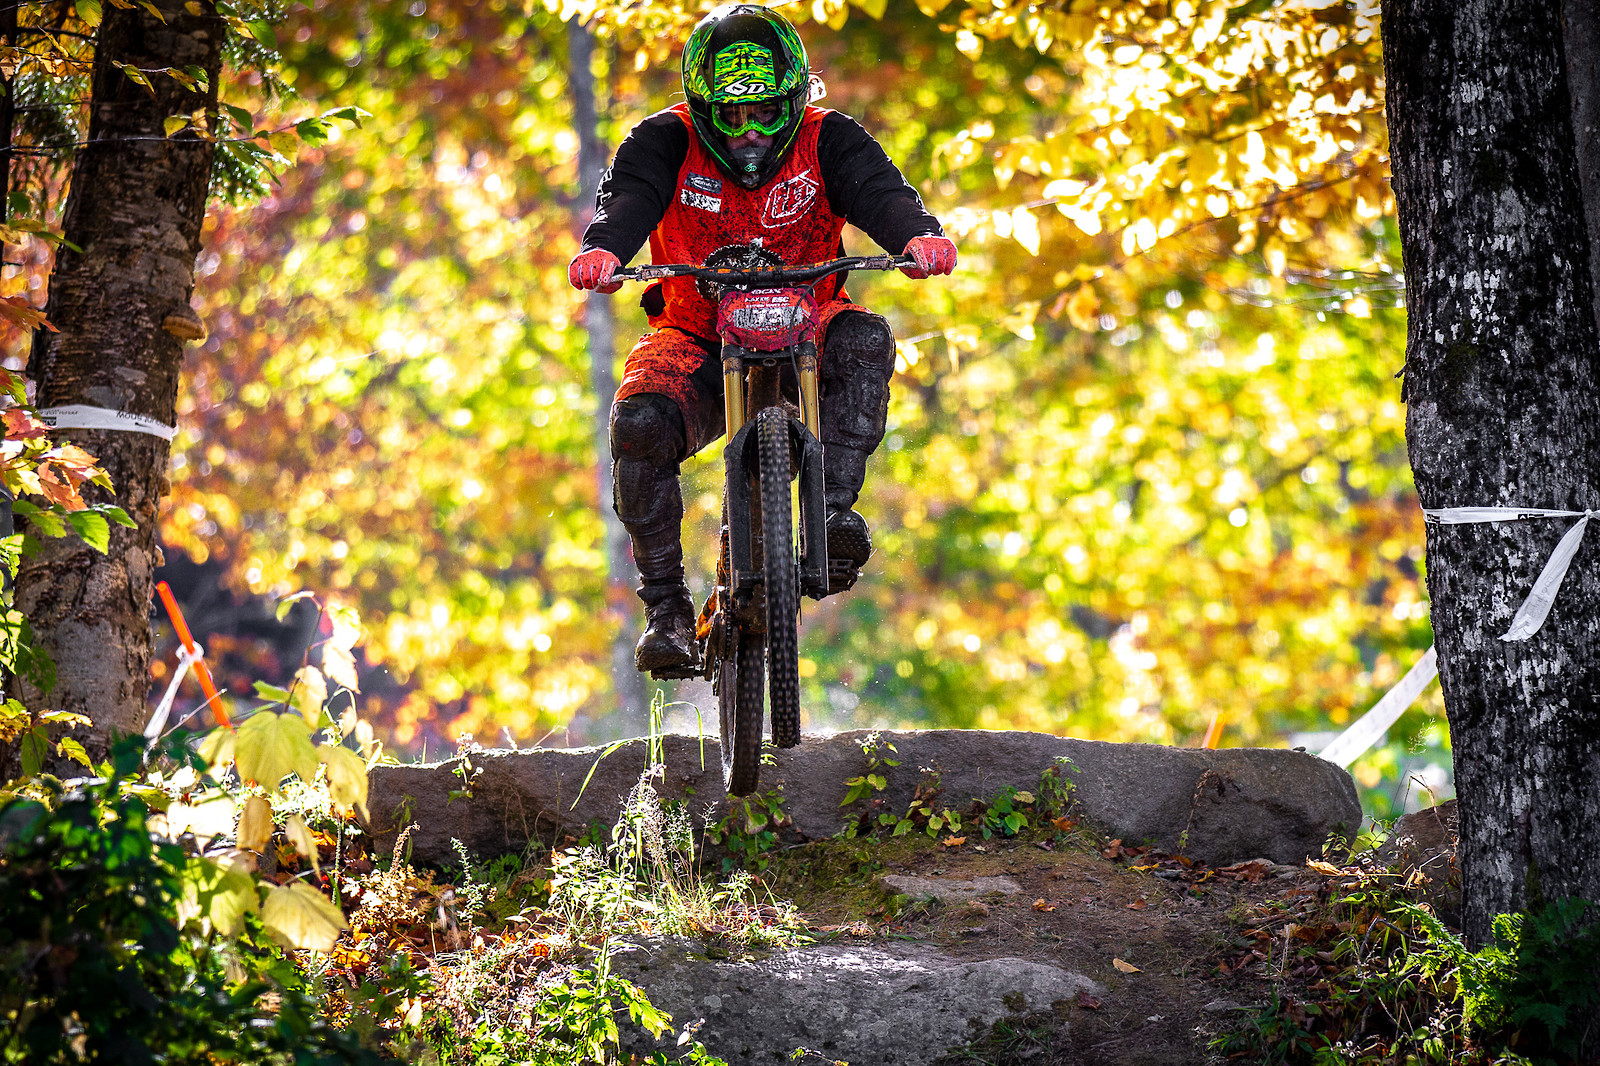 Maxxis ESC DH #8, Final Round, Mt. Snow Vermont - JackRice - Mountain Biking Pictures - Vital MTB